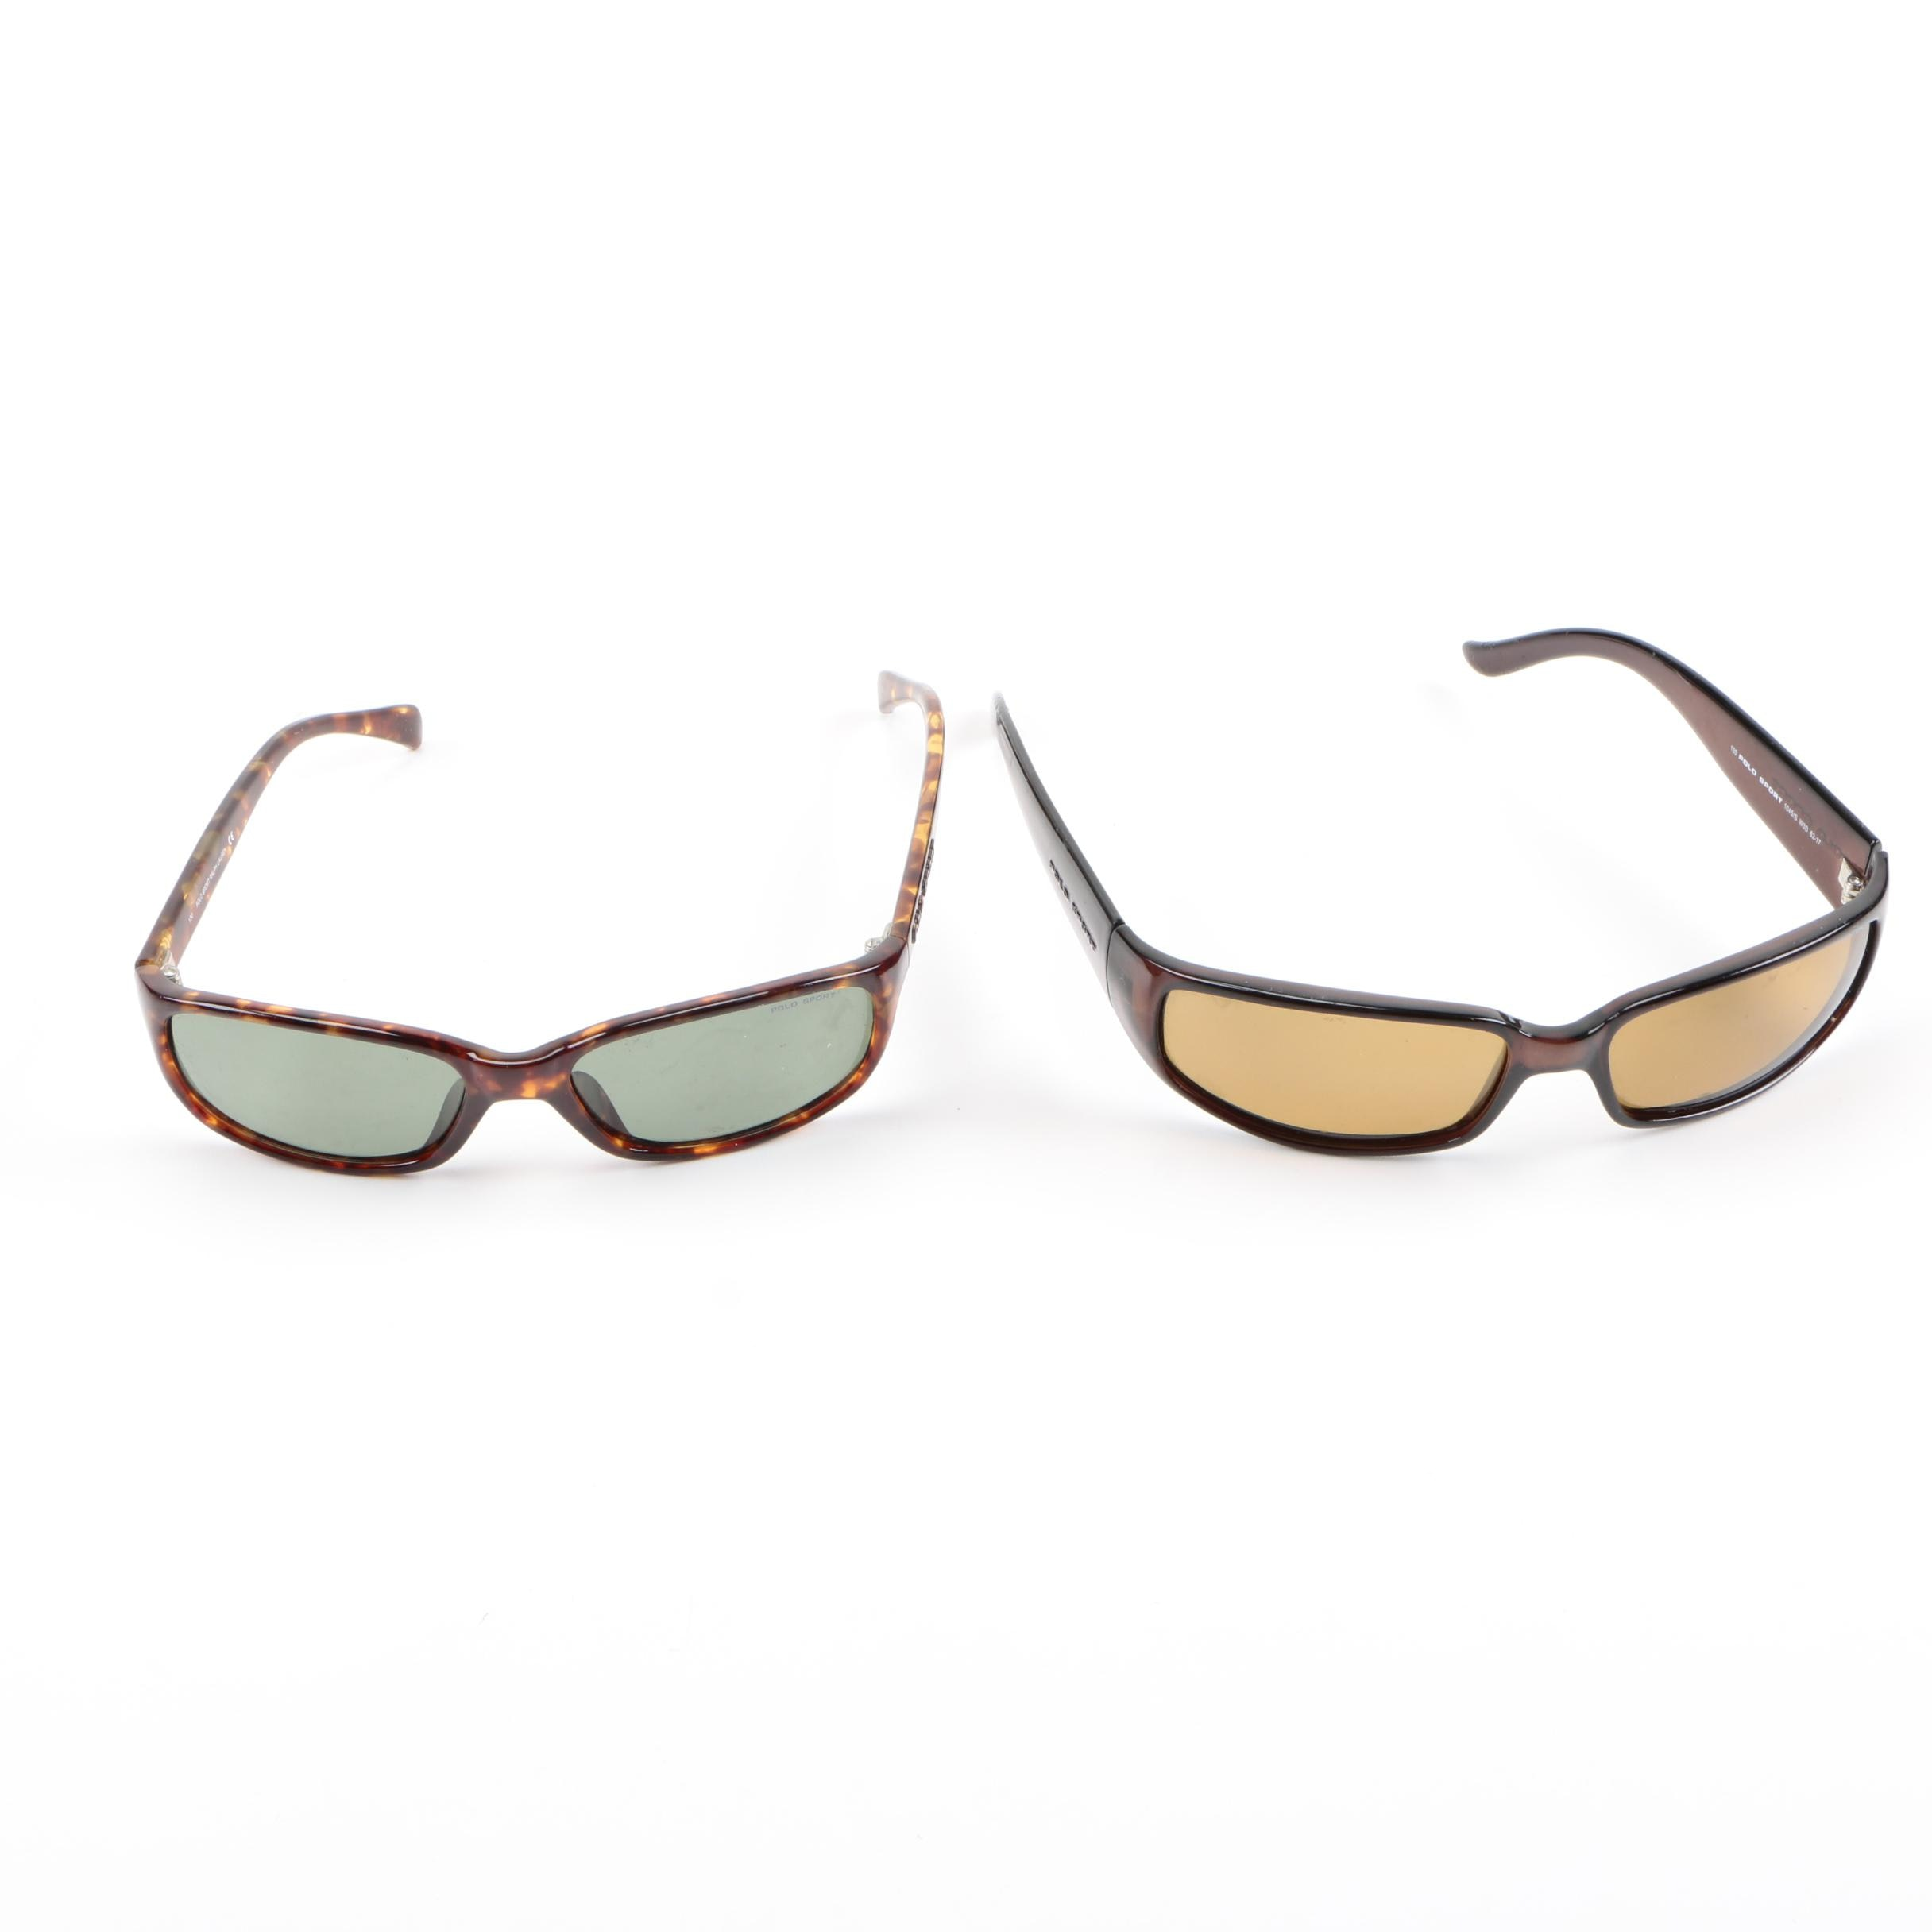 Two Pair of Brown Frame Sunglasses by Polo Sport Ralph Lauren